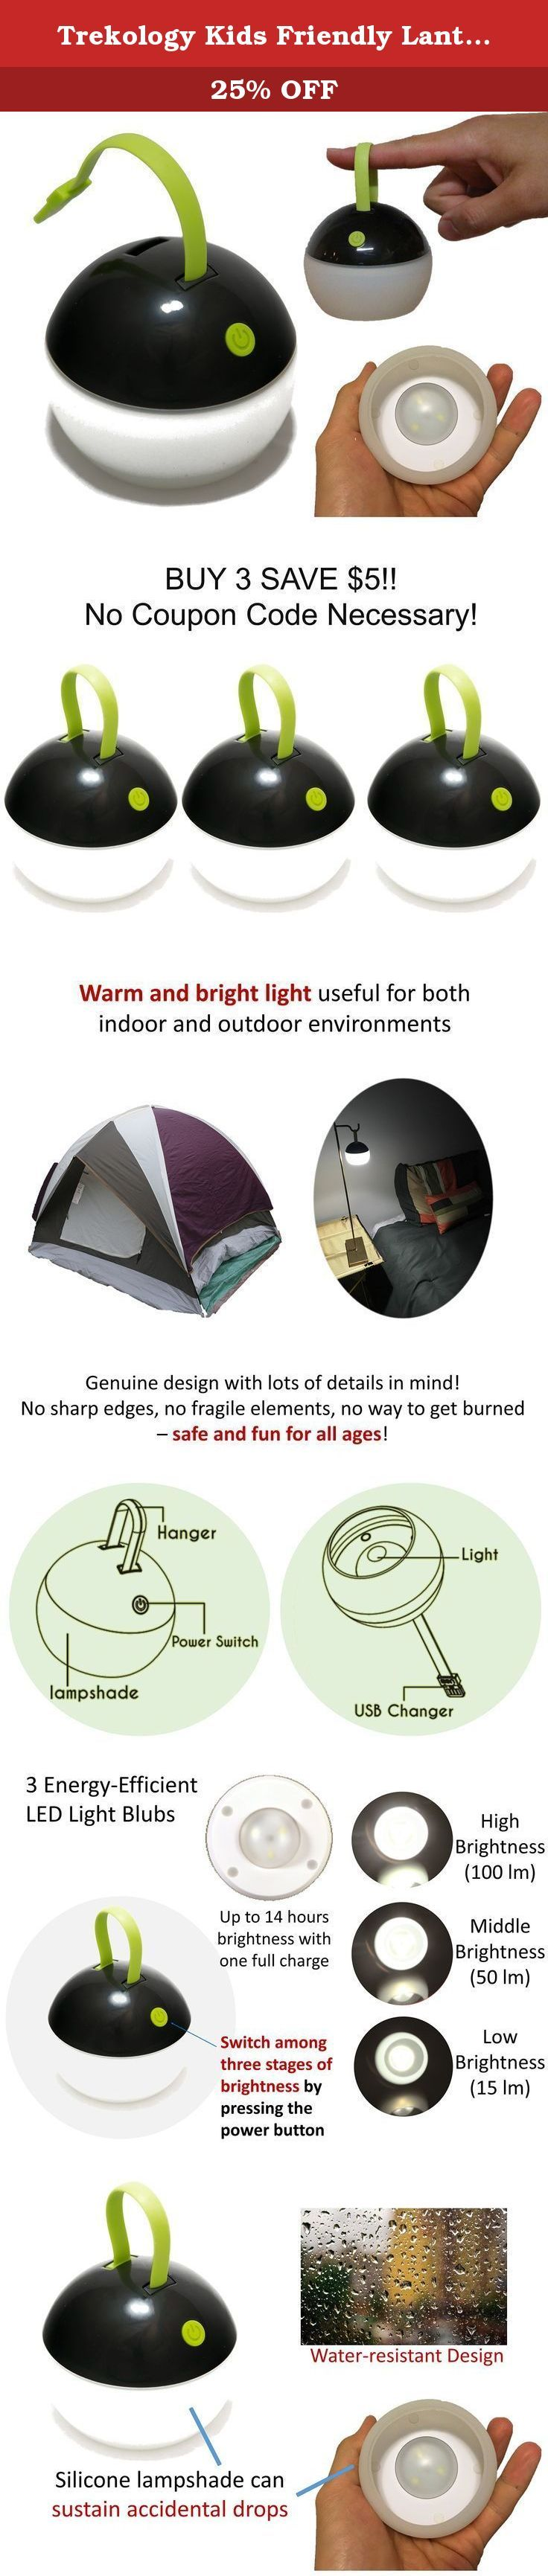 Trekology Kids Friendly Lantern - Durable, Drop-proof, Ultralight, Water-resist for Kids at all Ages - Long lasting Light and USB Rechargeable Tent Light, Camping Lantern, Night light. Inspired by the popular animation, this pokemon-ball style LED lantern is fun for all occasions! Whether you want to put it on your patio table for romantic lighting, or hang it in your camping tent for some evening entertainment - this lantern is perfect for you! This hand lamp features a soft plastic…